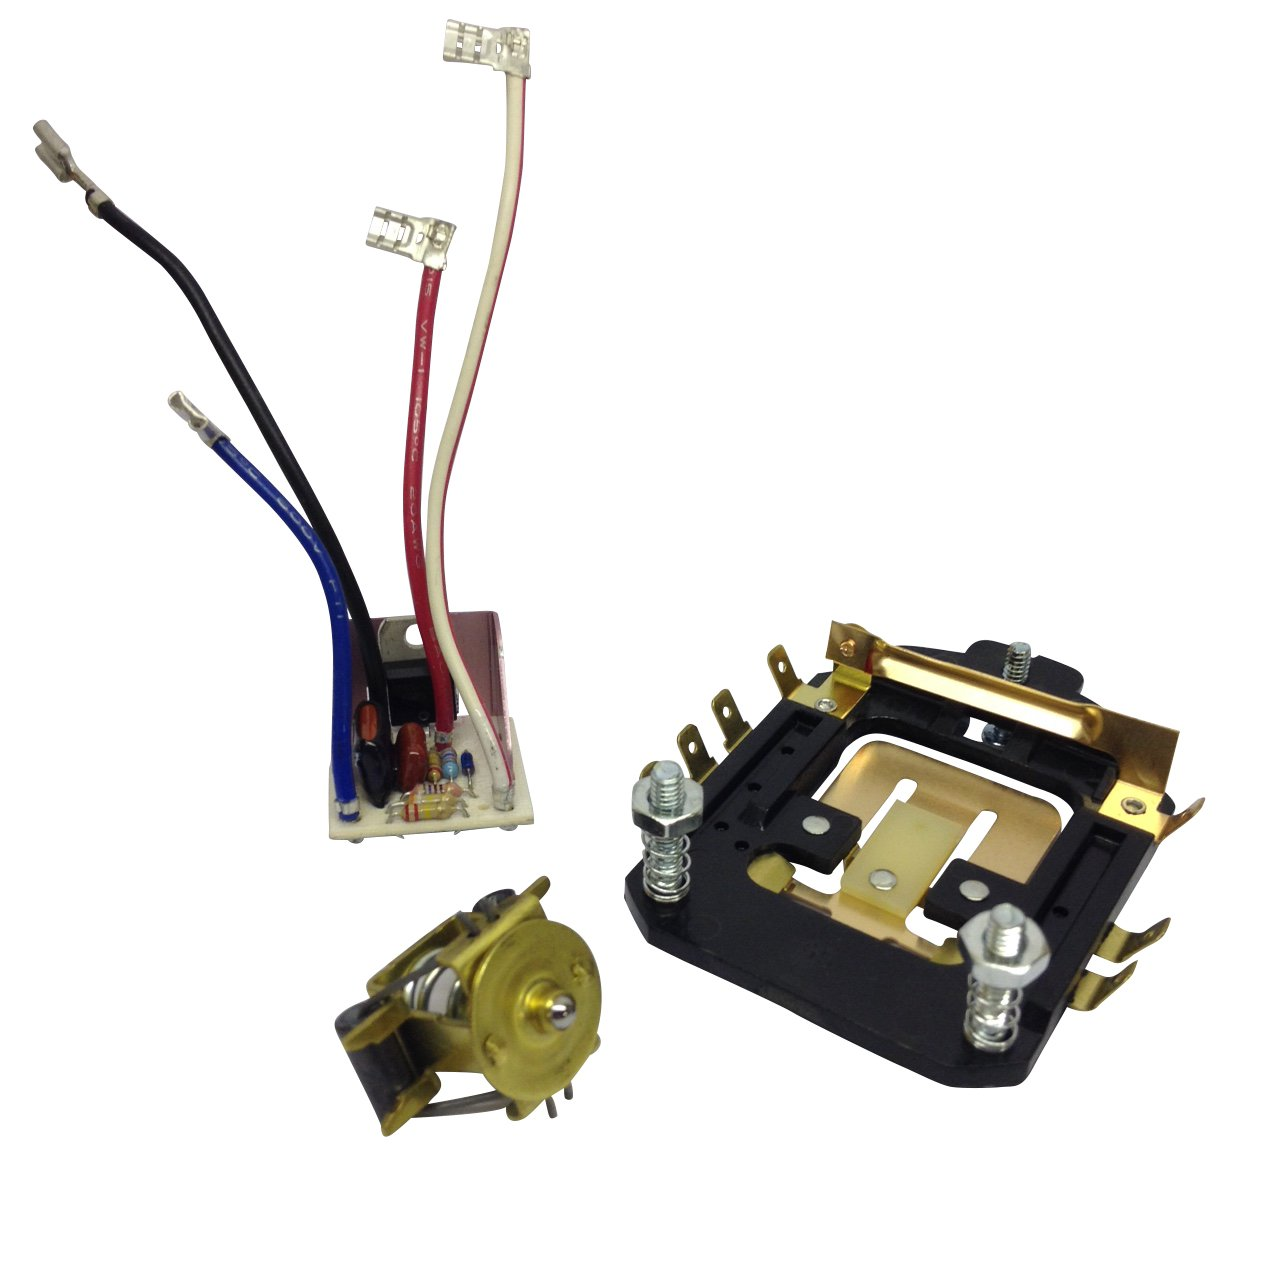 KITCHENAID SPEED CONTROL PLATE PHASE BOARD AND GOVERNOR